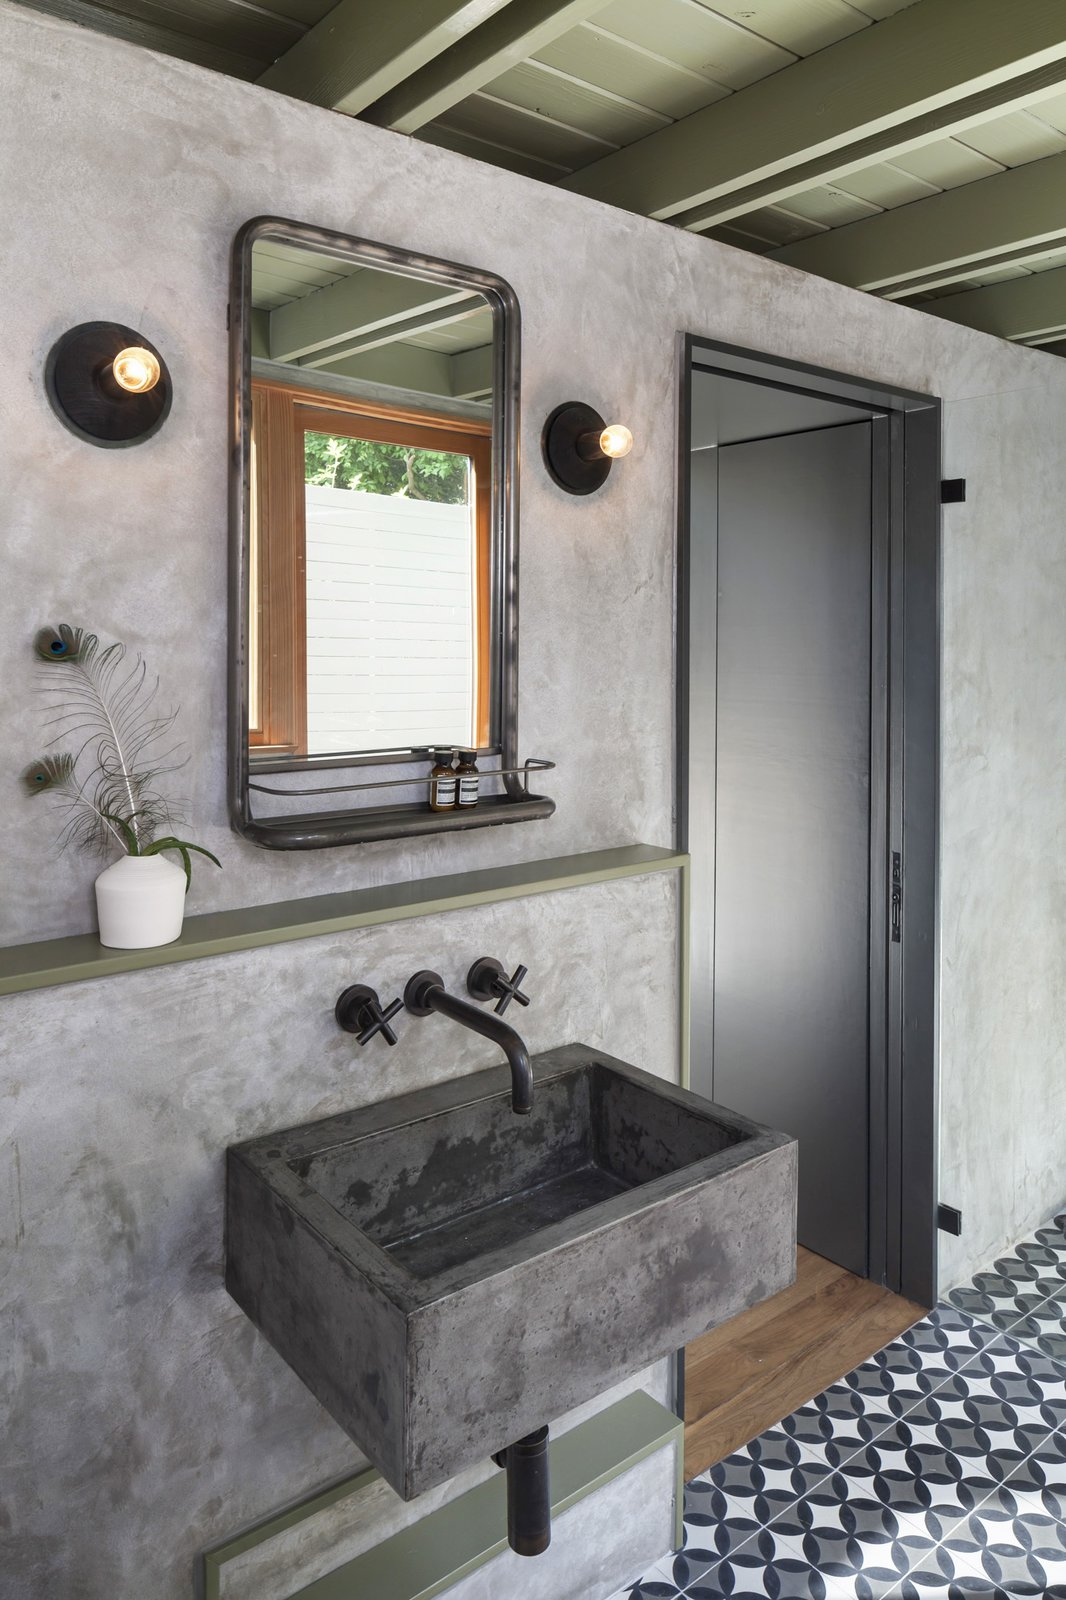 The new casita bathroom features a custom concrete sink, plaster walls, and custom concrete tile. Tagged: Bath Room, Wall Mount Sink, Wall Lighting, and Cement Tile Floor.  Garner Pool & Casita by Elizabeth Baird